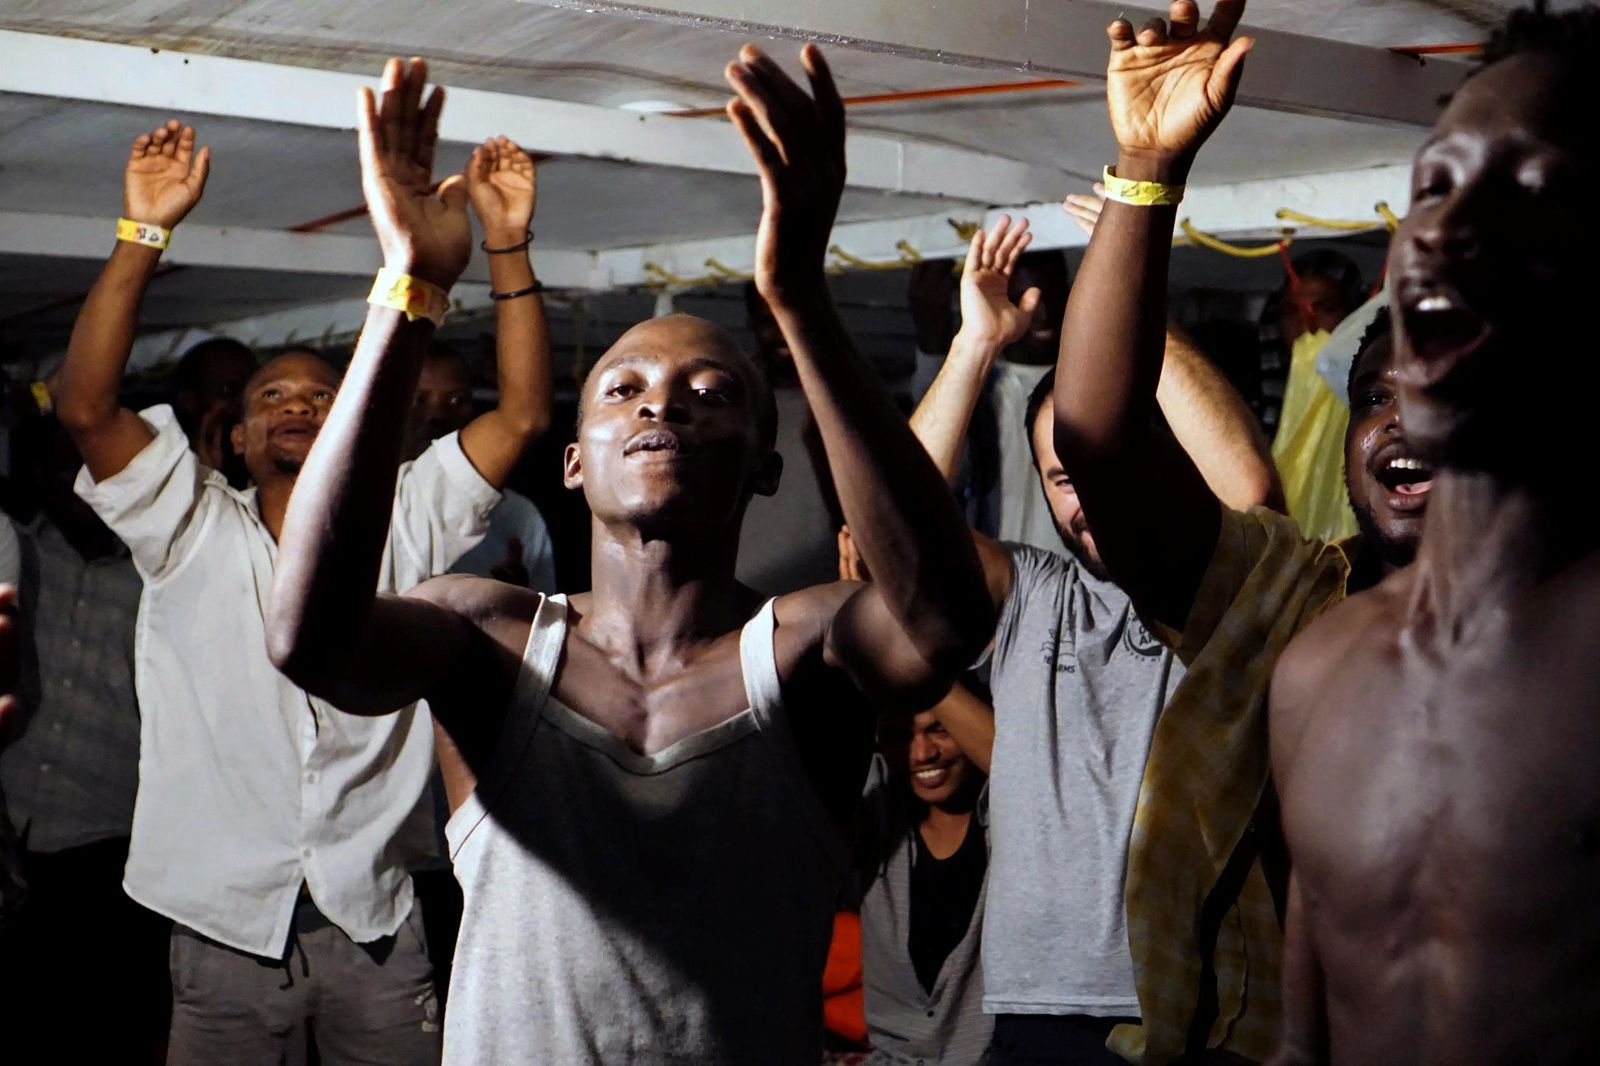 Migrants onboard the Open Arms vessel celebrate the news of an Italian prosecutor who has ordered that the migrants be disembarked on the island of Lampedusa, southern Italy, Tuesday, Aug. 20, 2019. (AP Photo/Francisco Gentico)